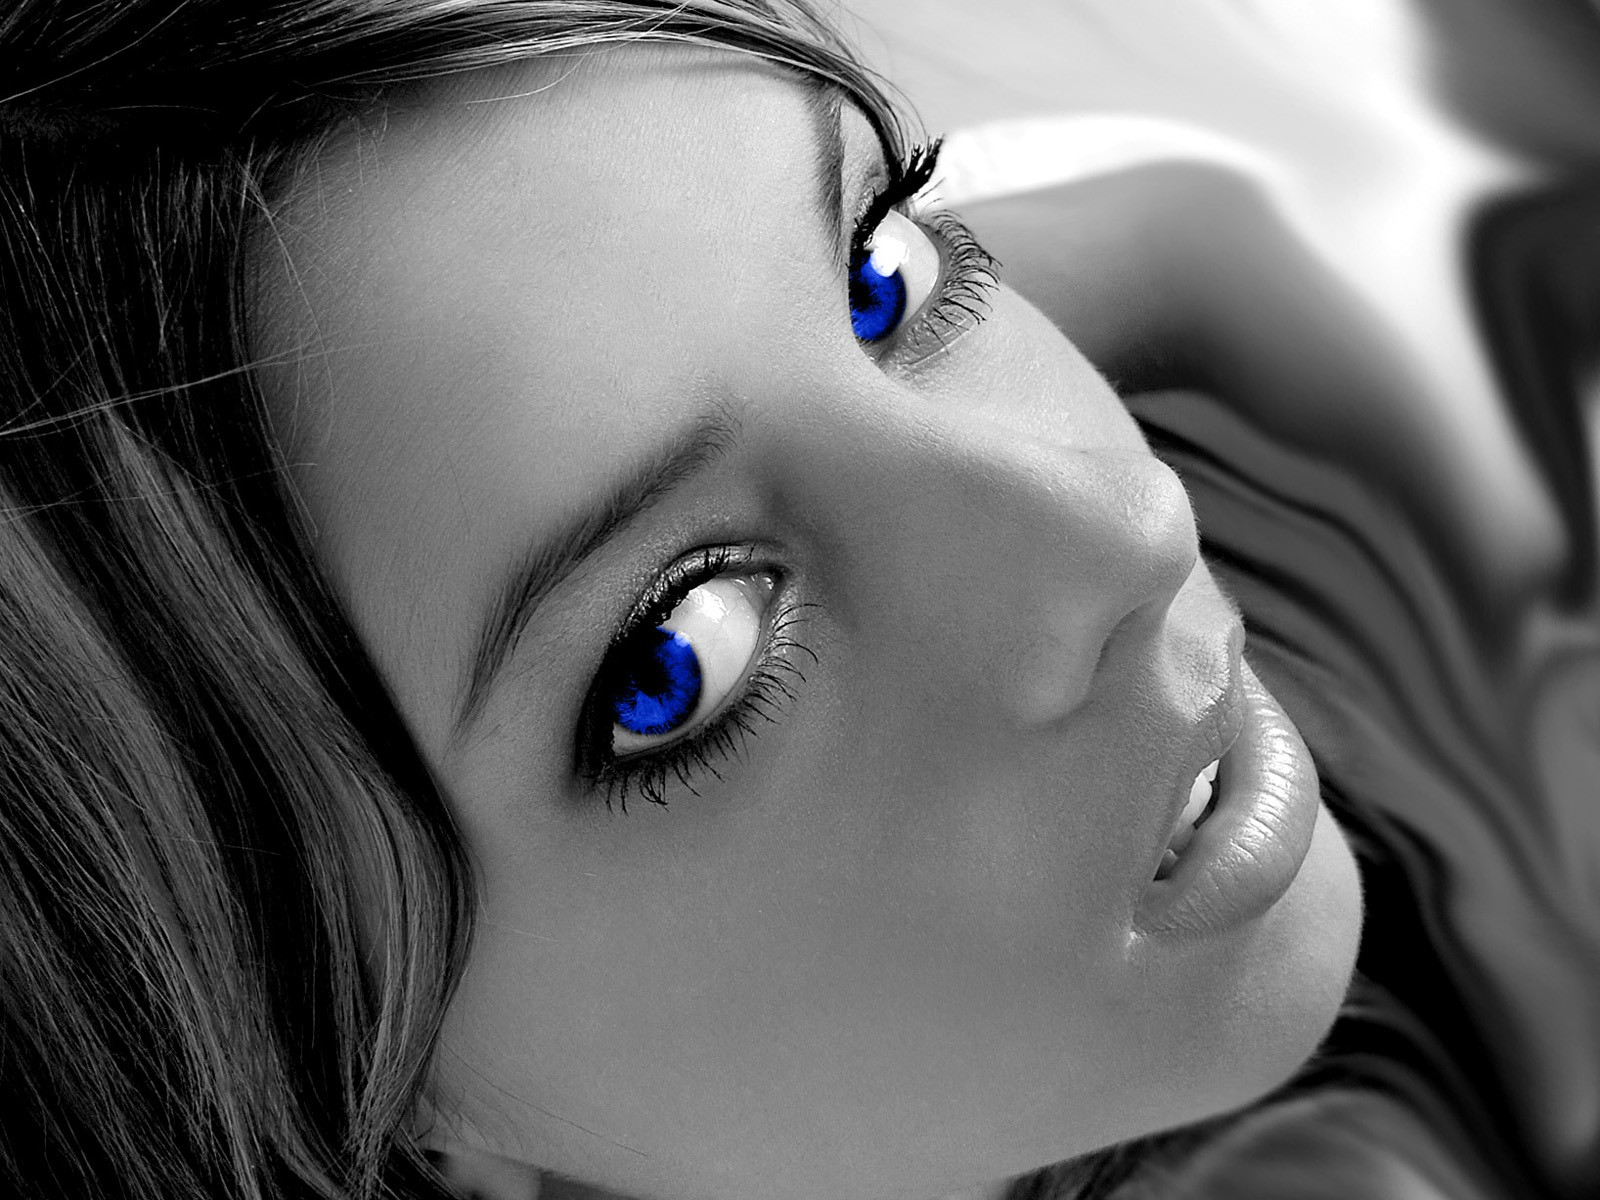 Awesome Selective Coloring HD Wallpapers | Desktop Wallpapers